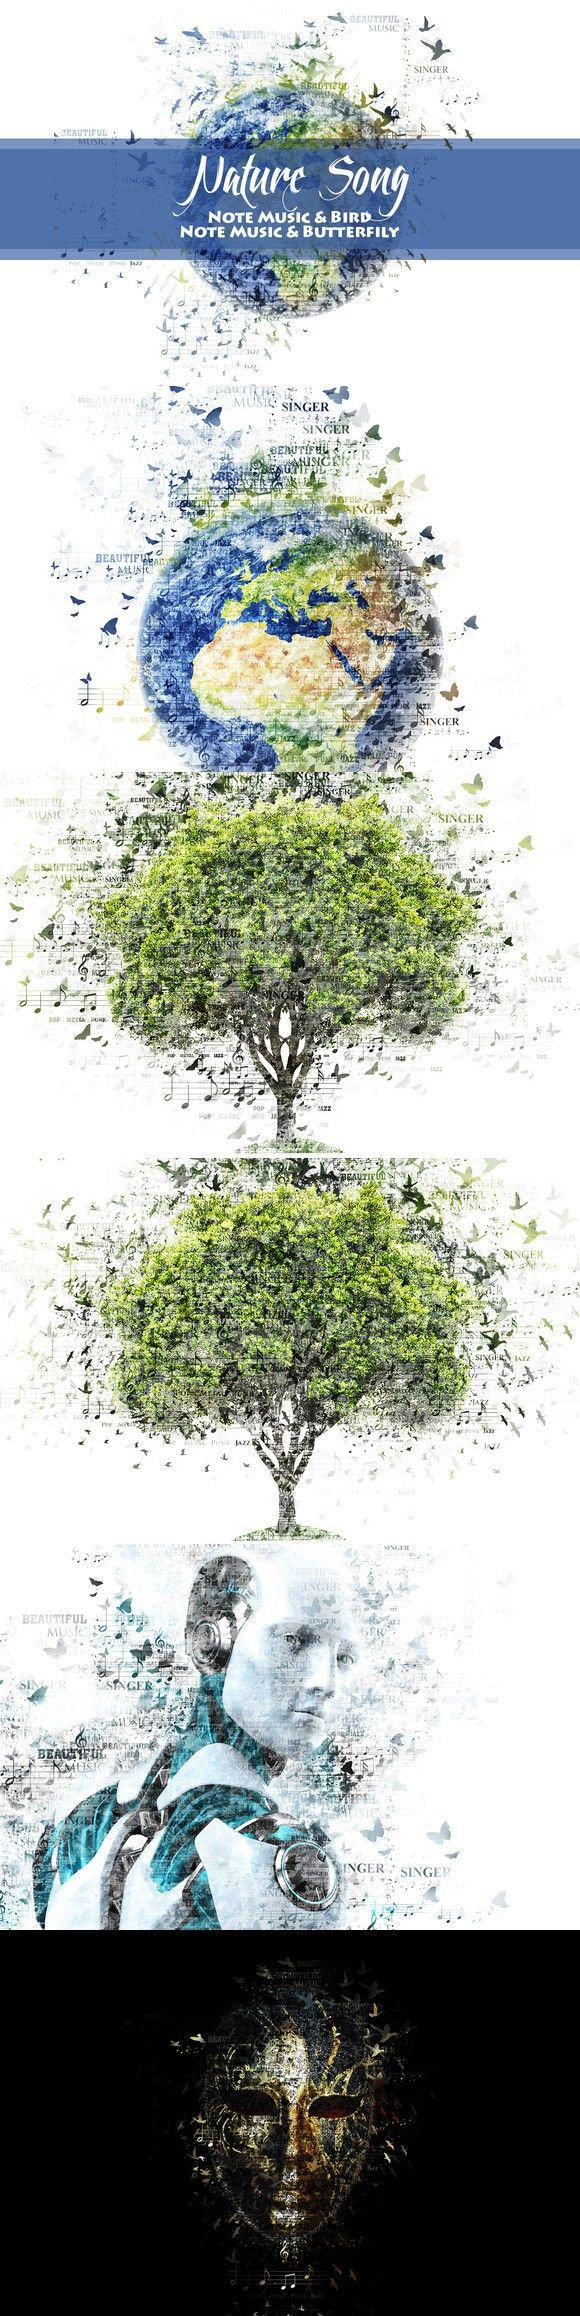 Nature Song Photoshop Action V01. Photo Effect Photoshop Actions. $11.00